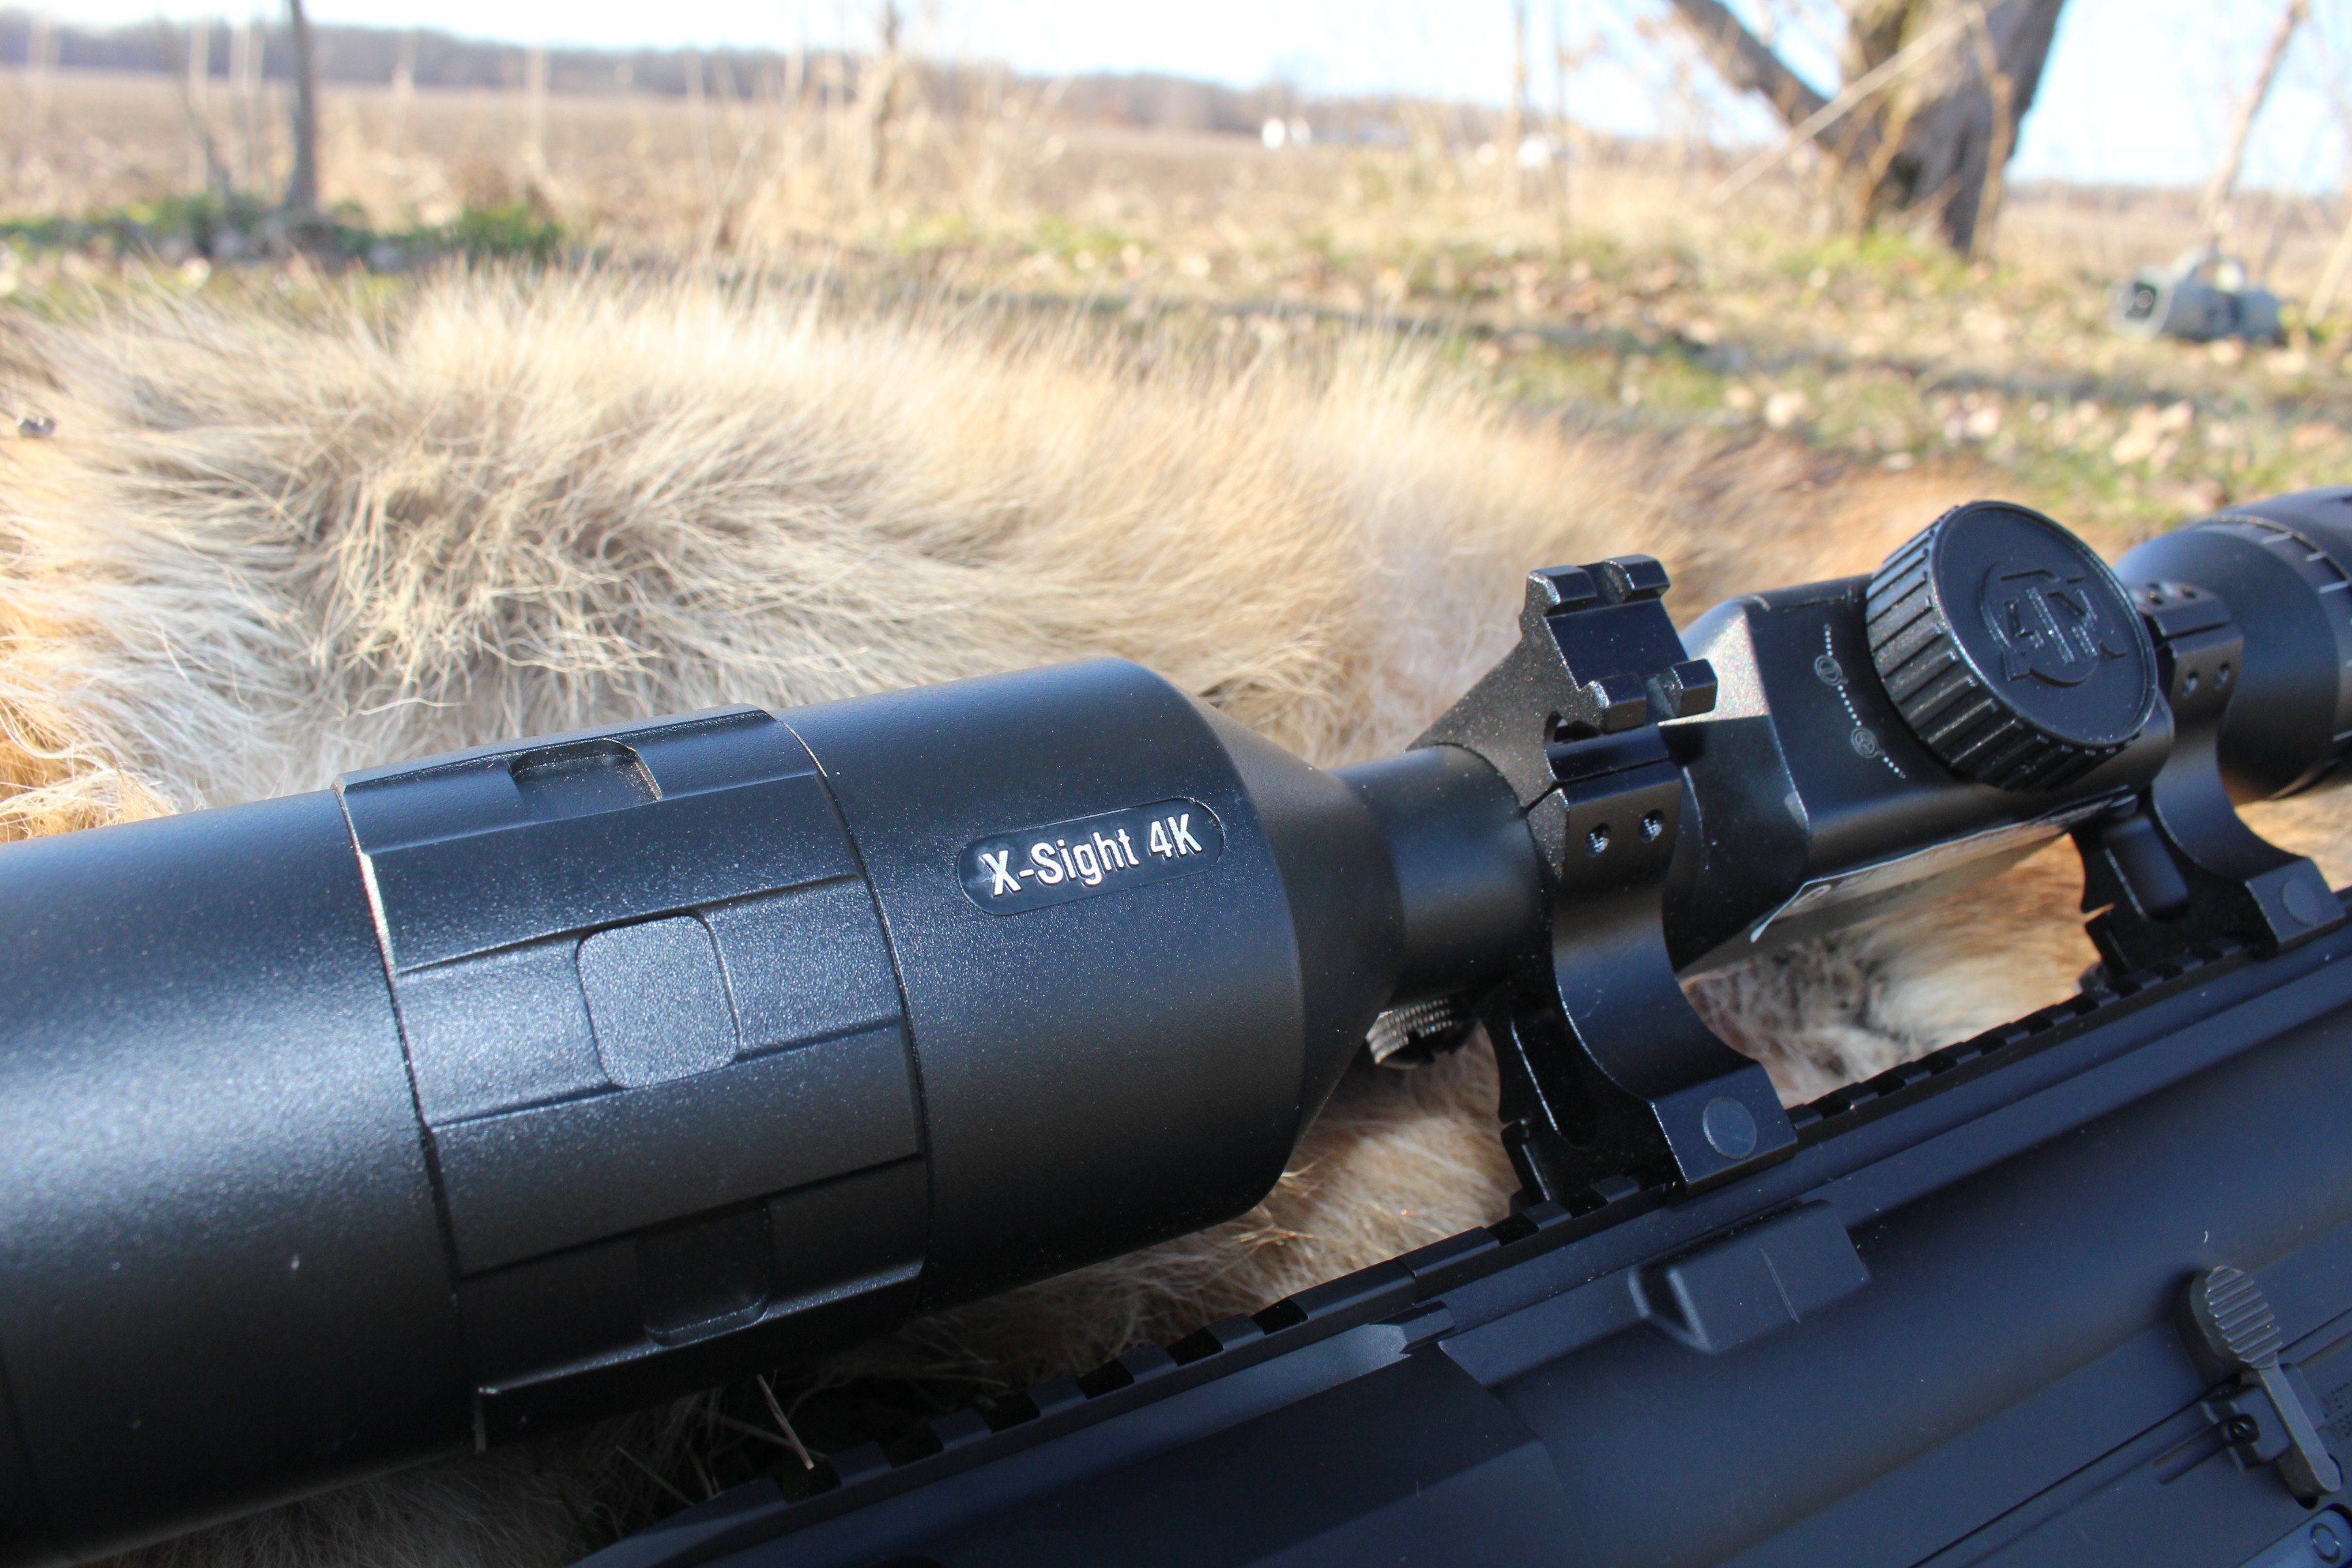 Gun Gear Review: ATN X-Sight 4K Pro Scope and Palmetto State Armory